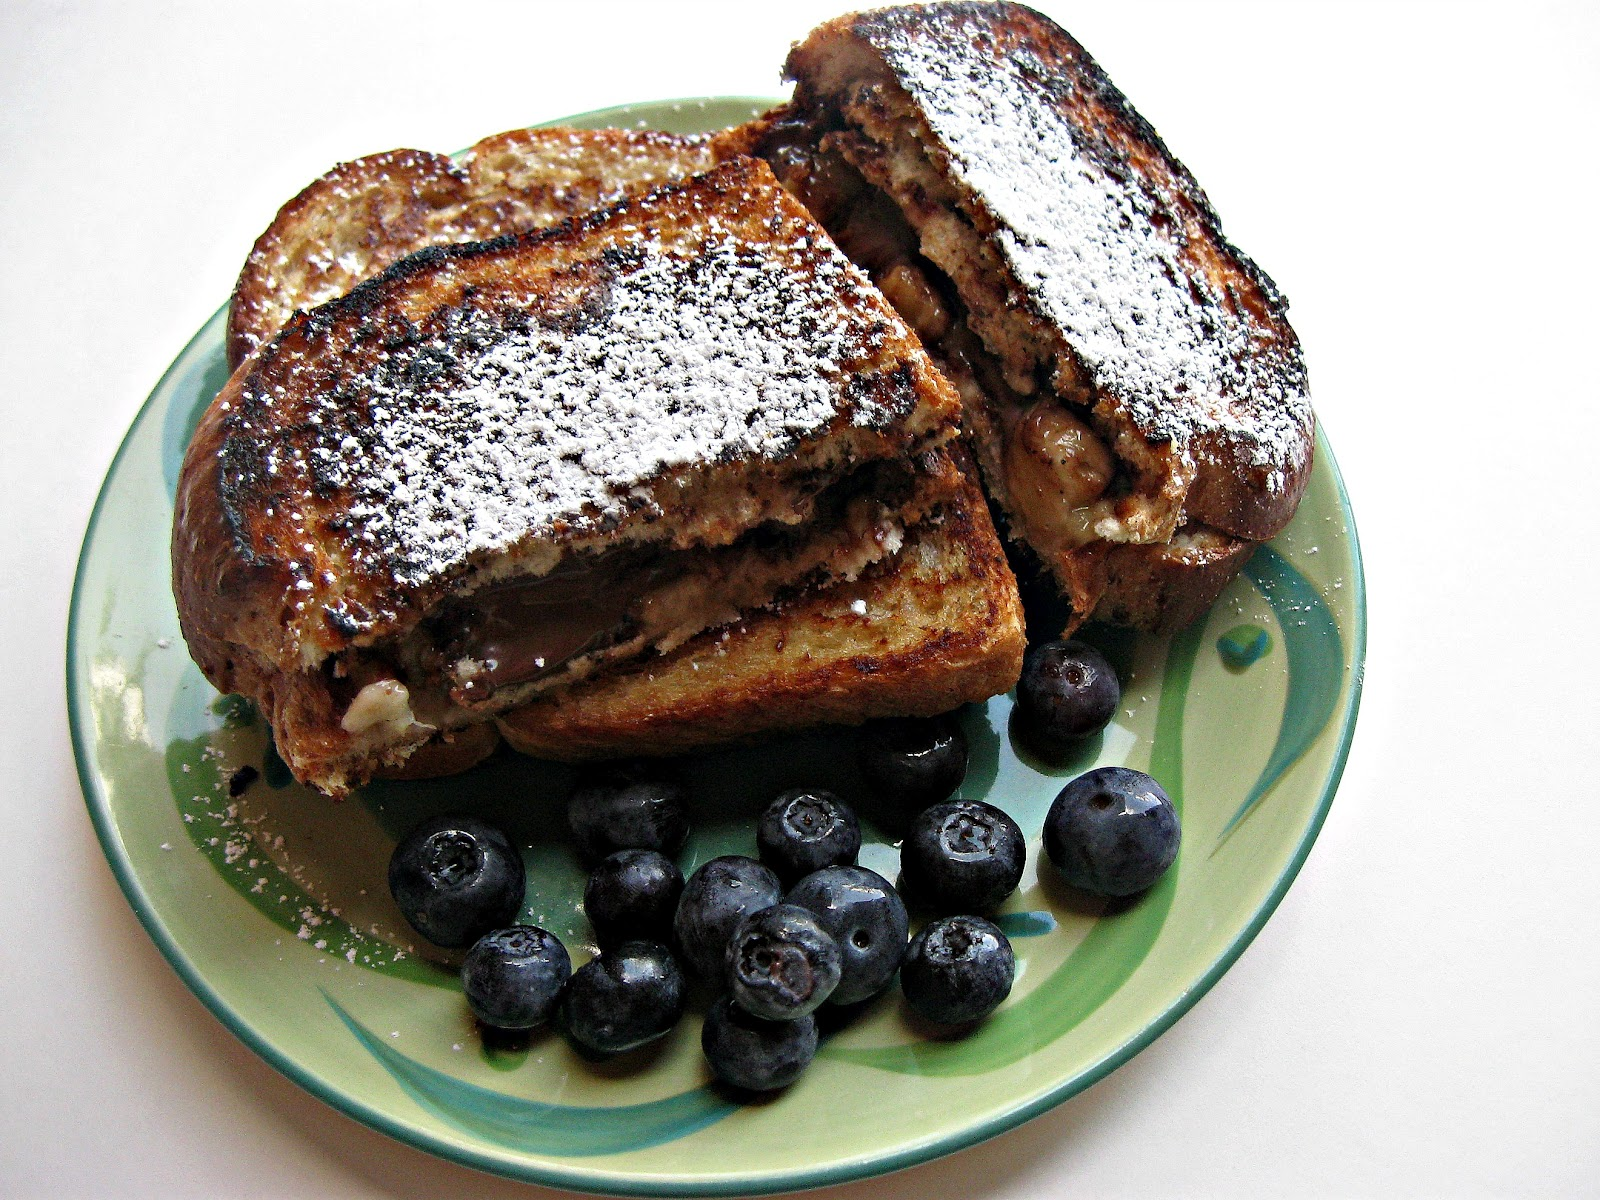 Show Tell Share: Grilled Nutella and Banana Sandwiches